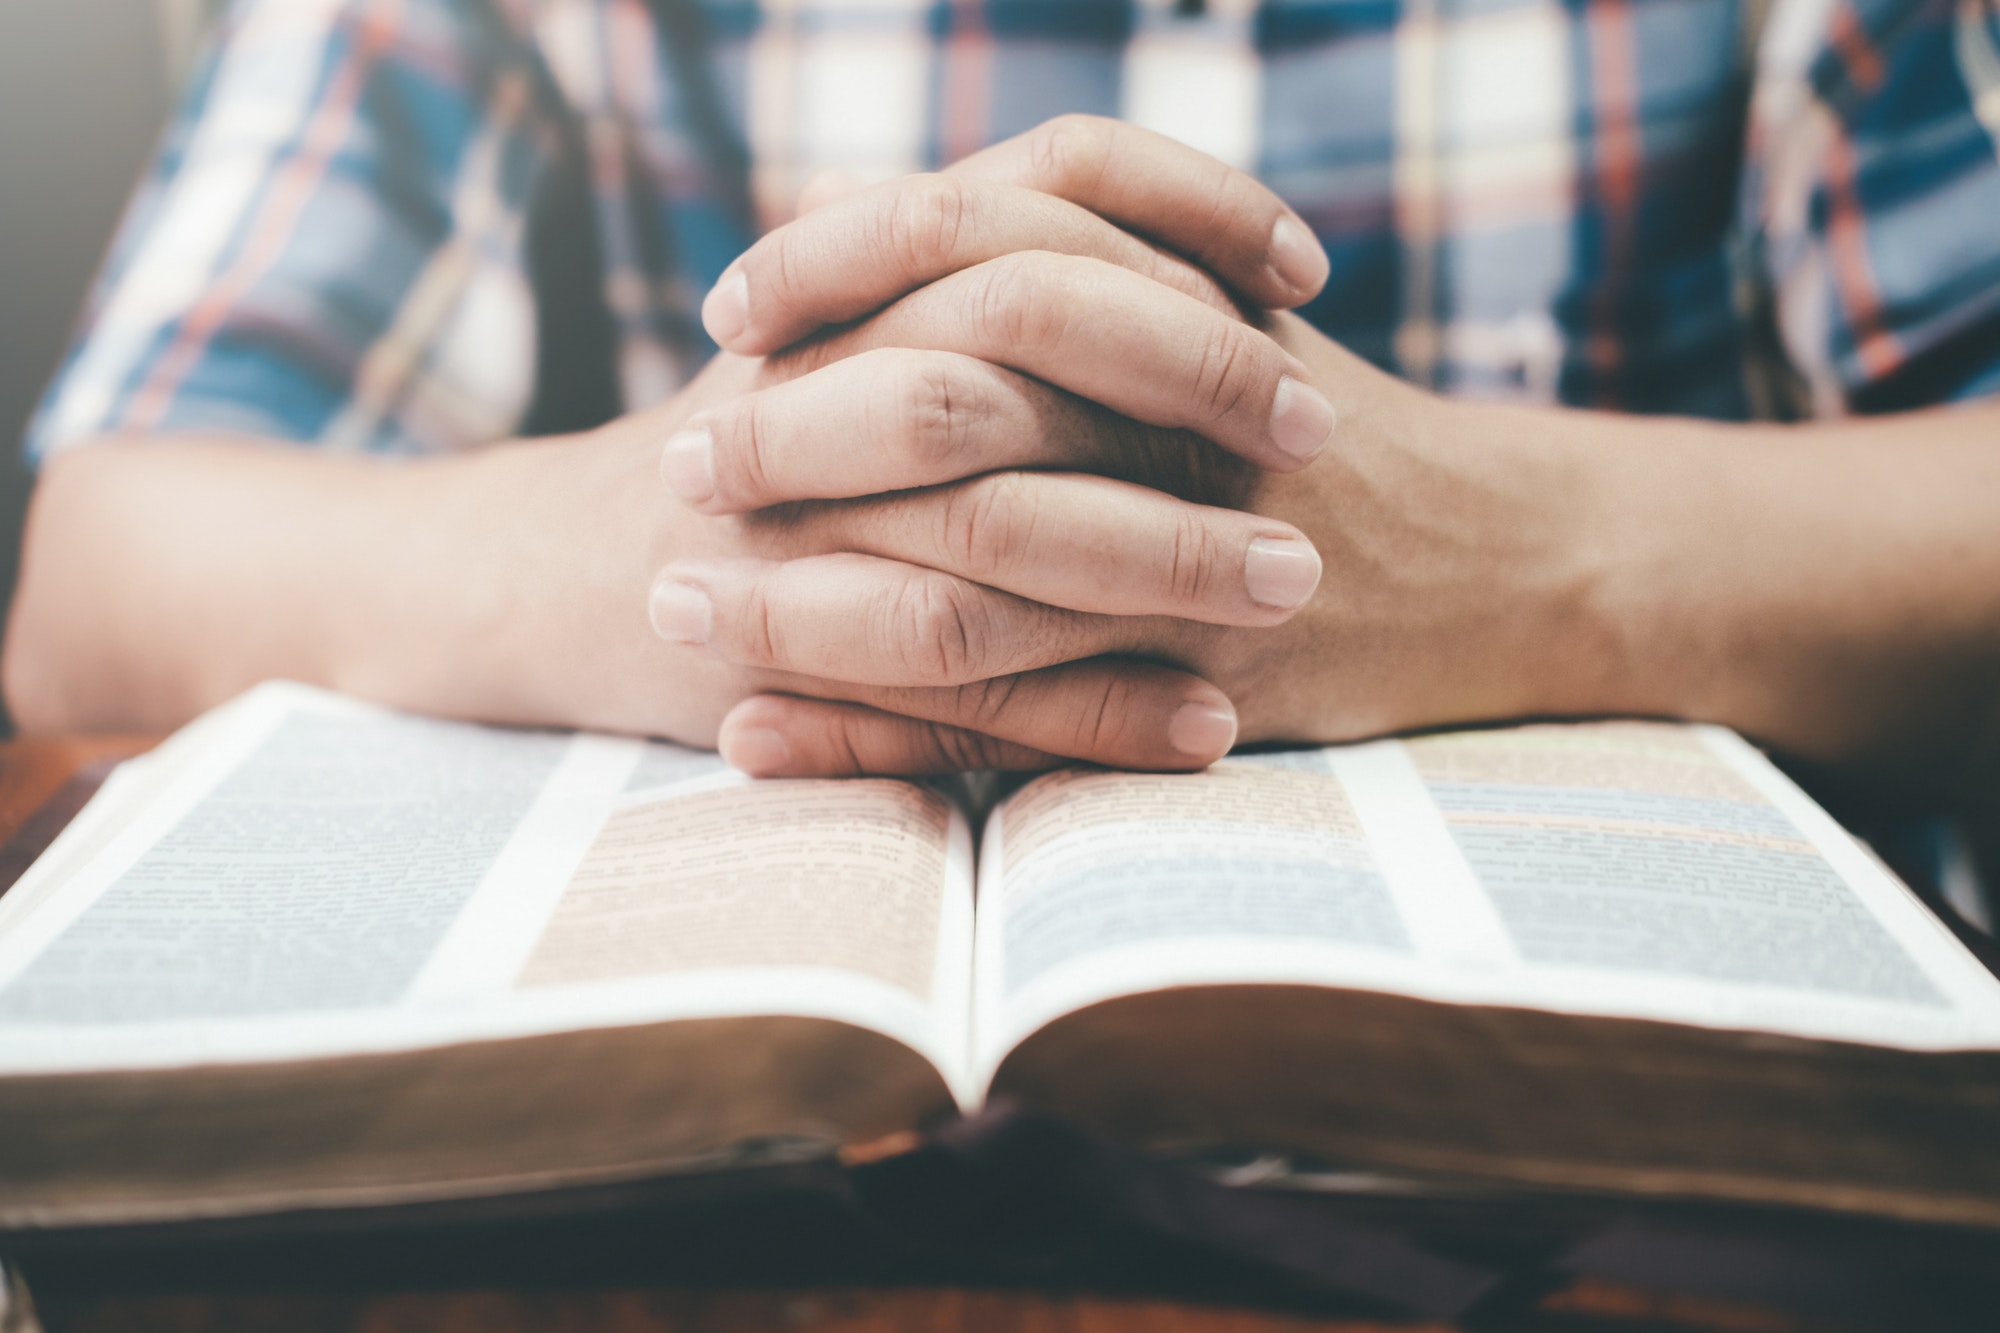 Man praying, hands clasped together on his Bible.